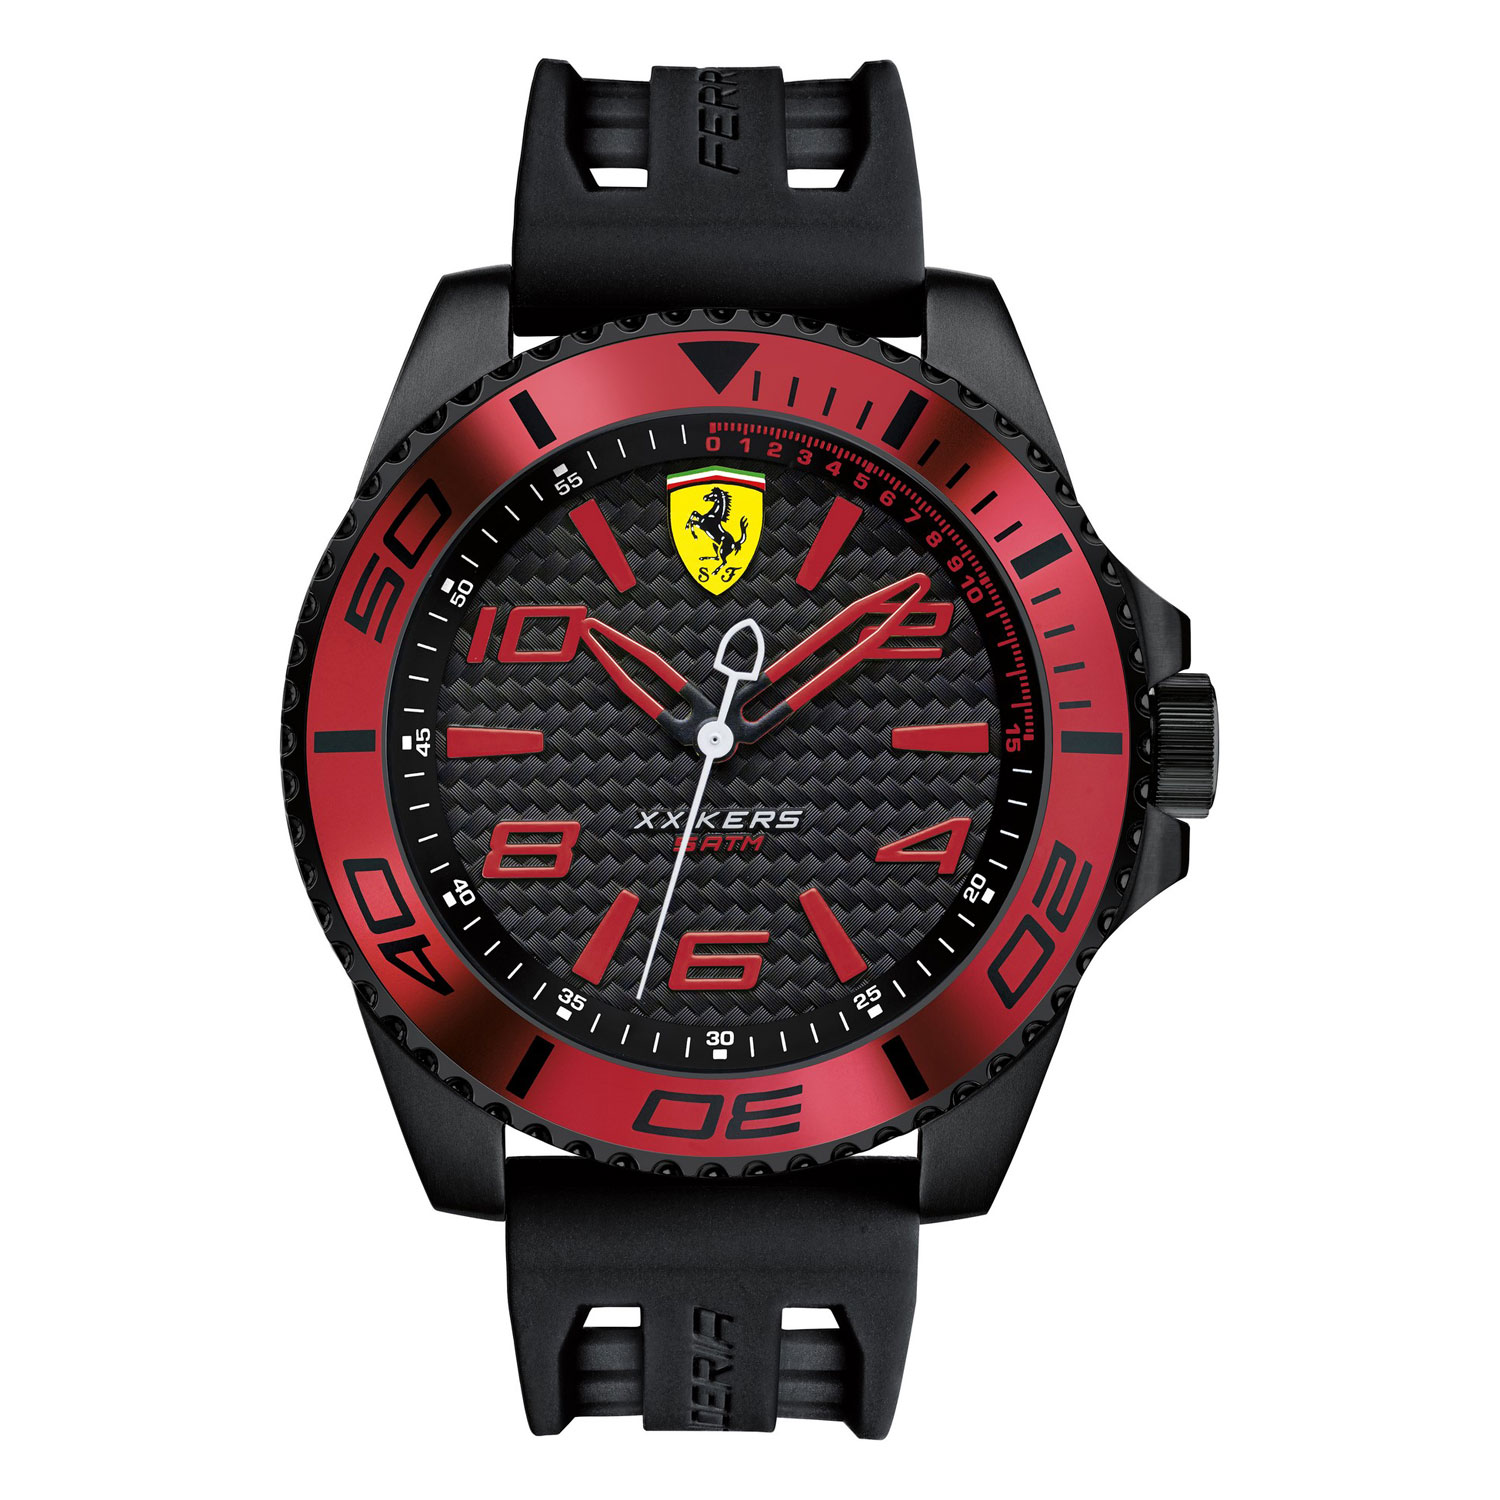 ferrari la com watches hublot kaunsa detail tourbillon buy online men watch